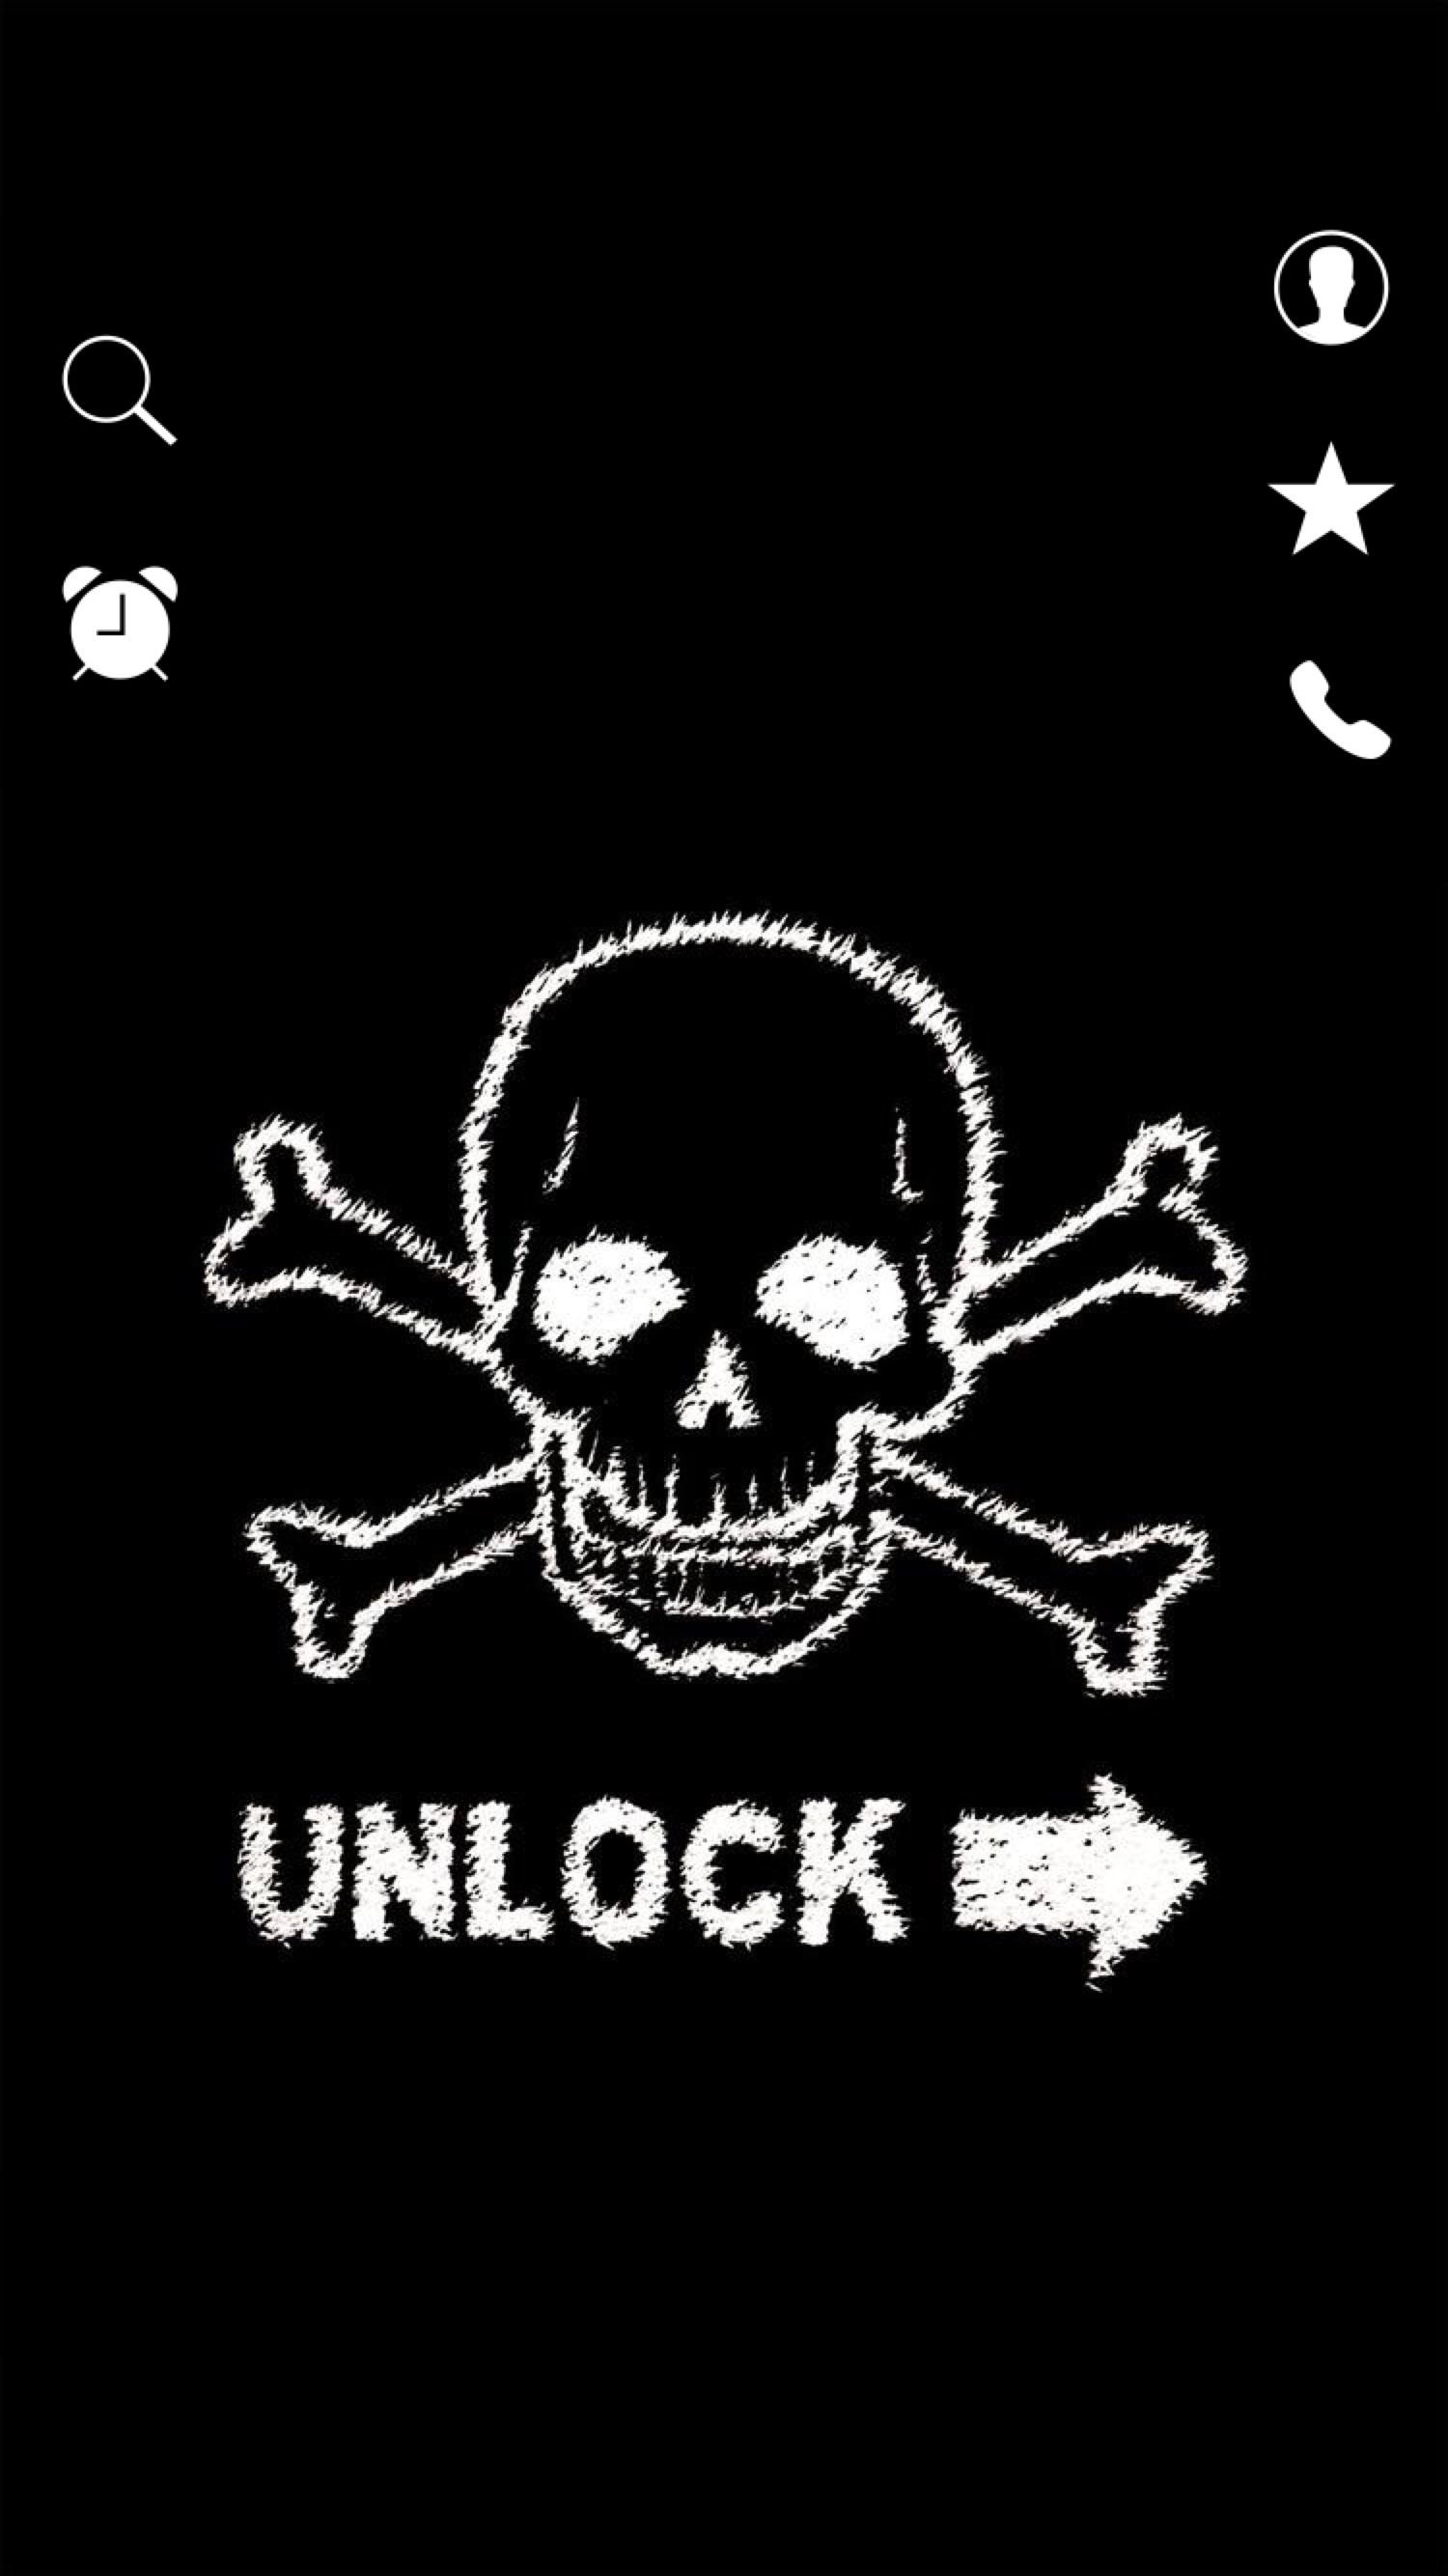 1500x2668 ↑↑TAP AND GET THE FREE APP! Lockscreens Art Creative Skull Crossbones  Unlock Black. Lock Screen WallpaperIphone 6SkullLocksScreensBlack